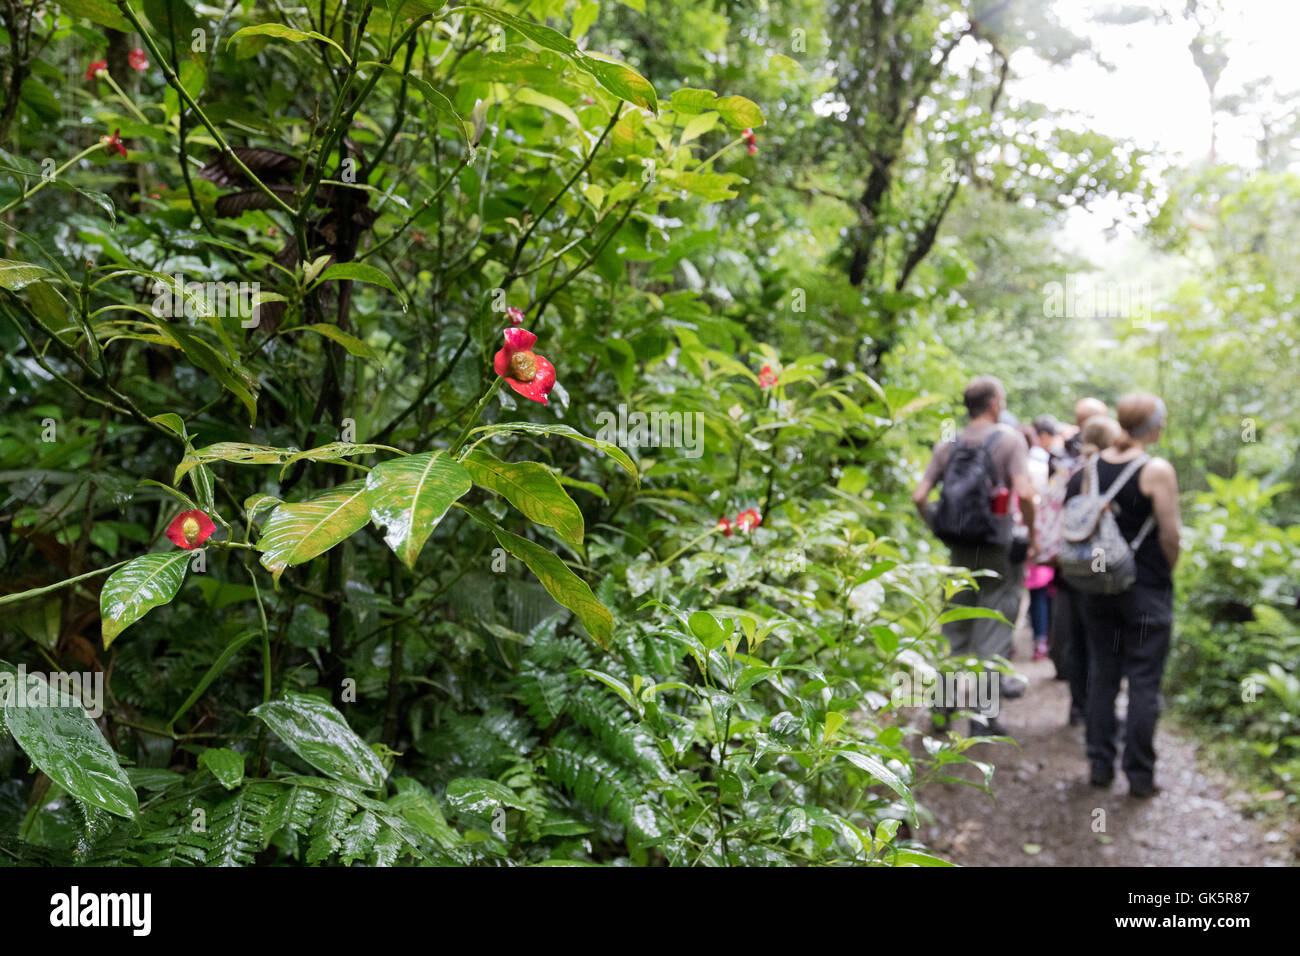 A group of visitors walking in the cloud forest, Monteverde, Costa Rica, Central America - Stock Image